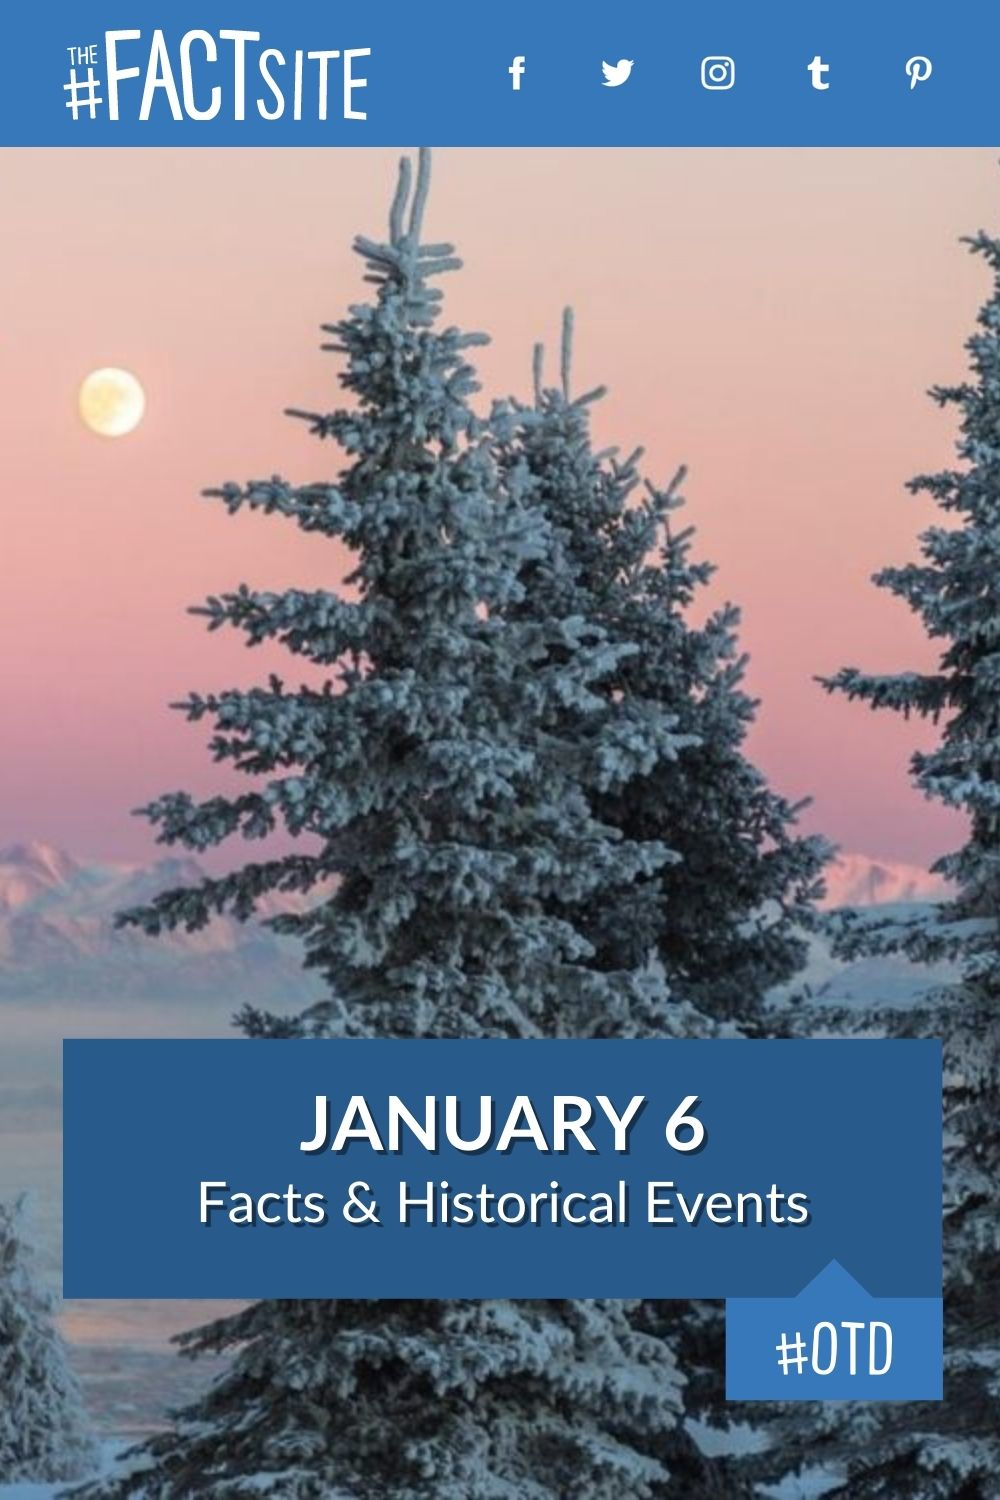 Facts & Historic Events That Happened on January 6